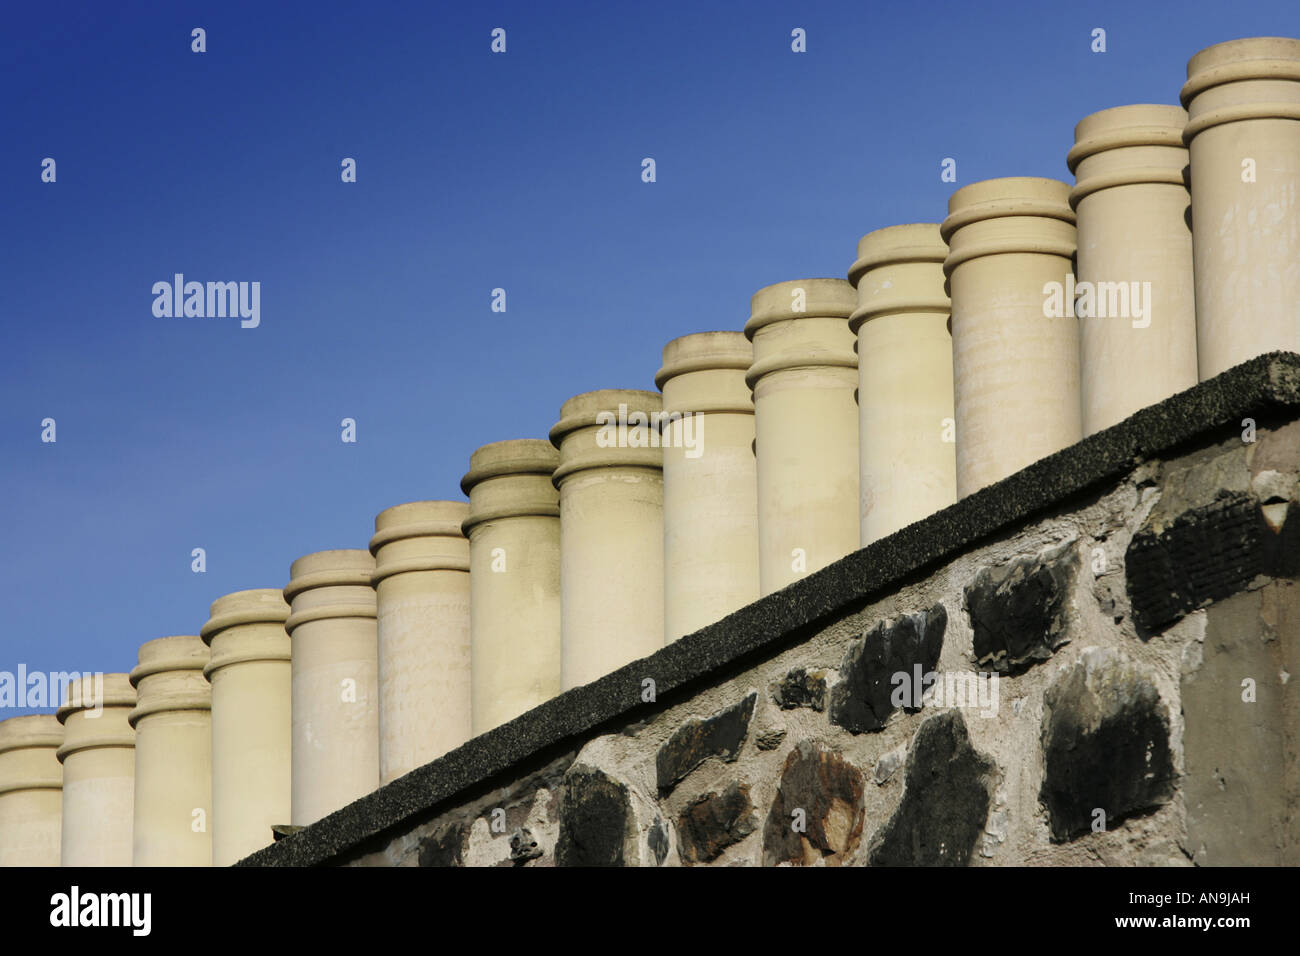 A row of chimney pots composed diagonally against a blue sky. - Stock Image